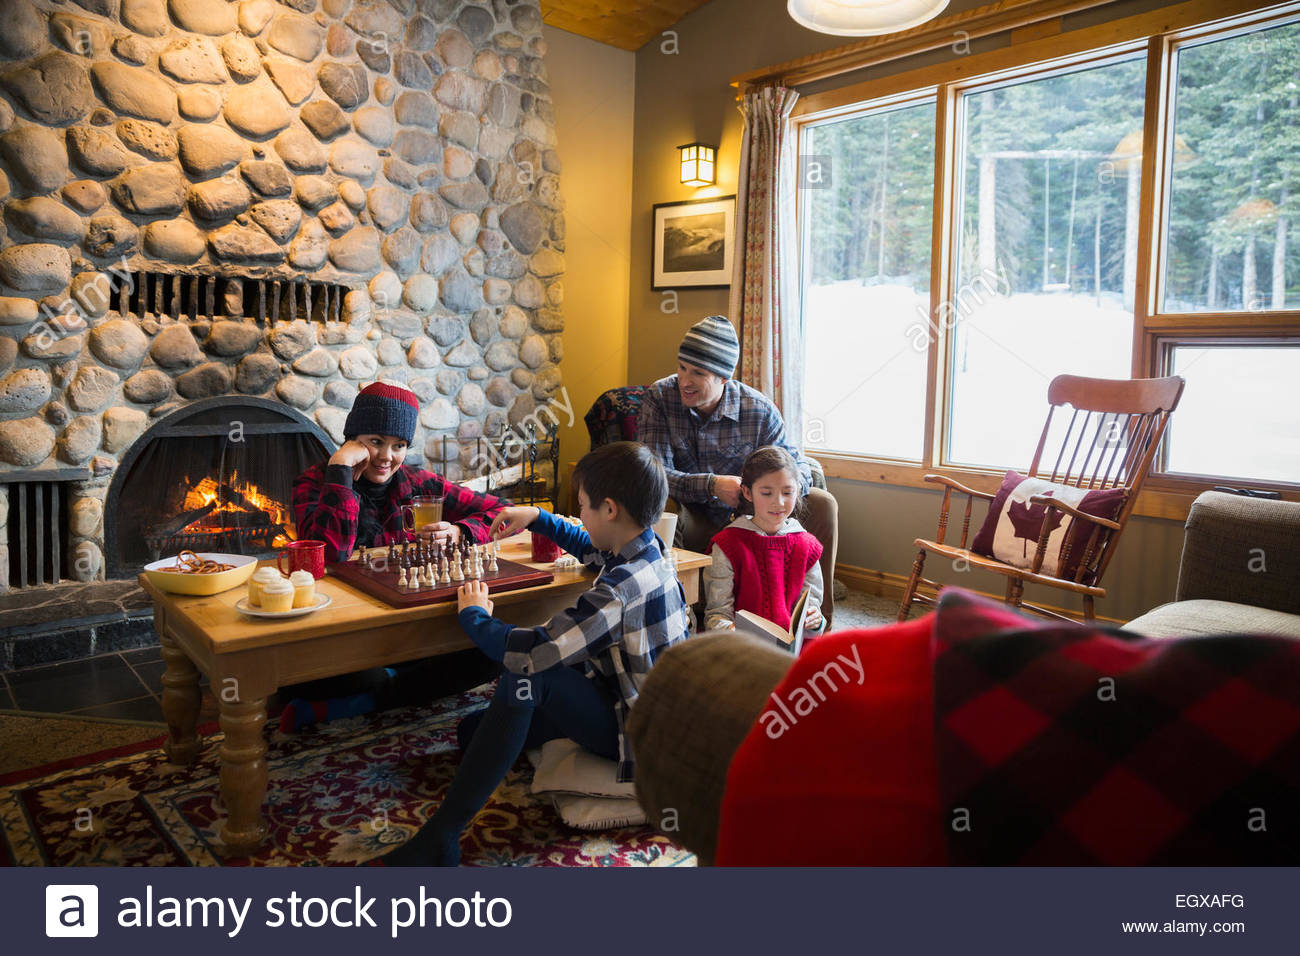 Family playing chess in lodge living room - Stock Image